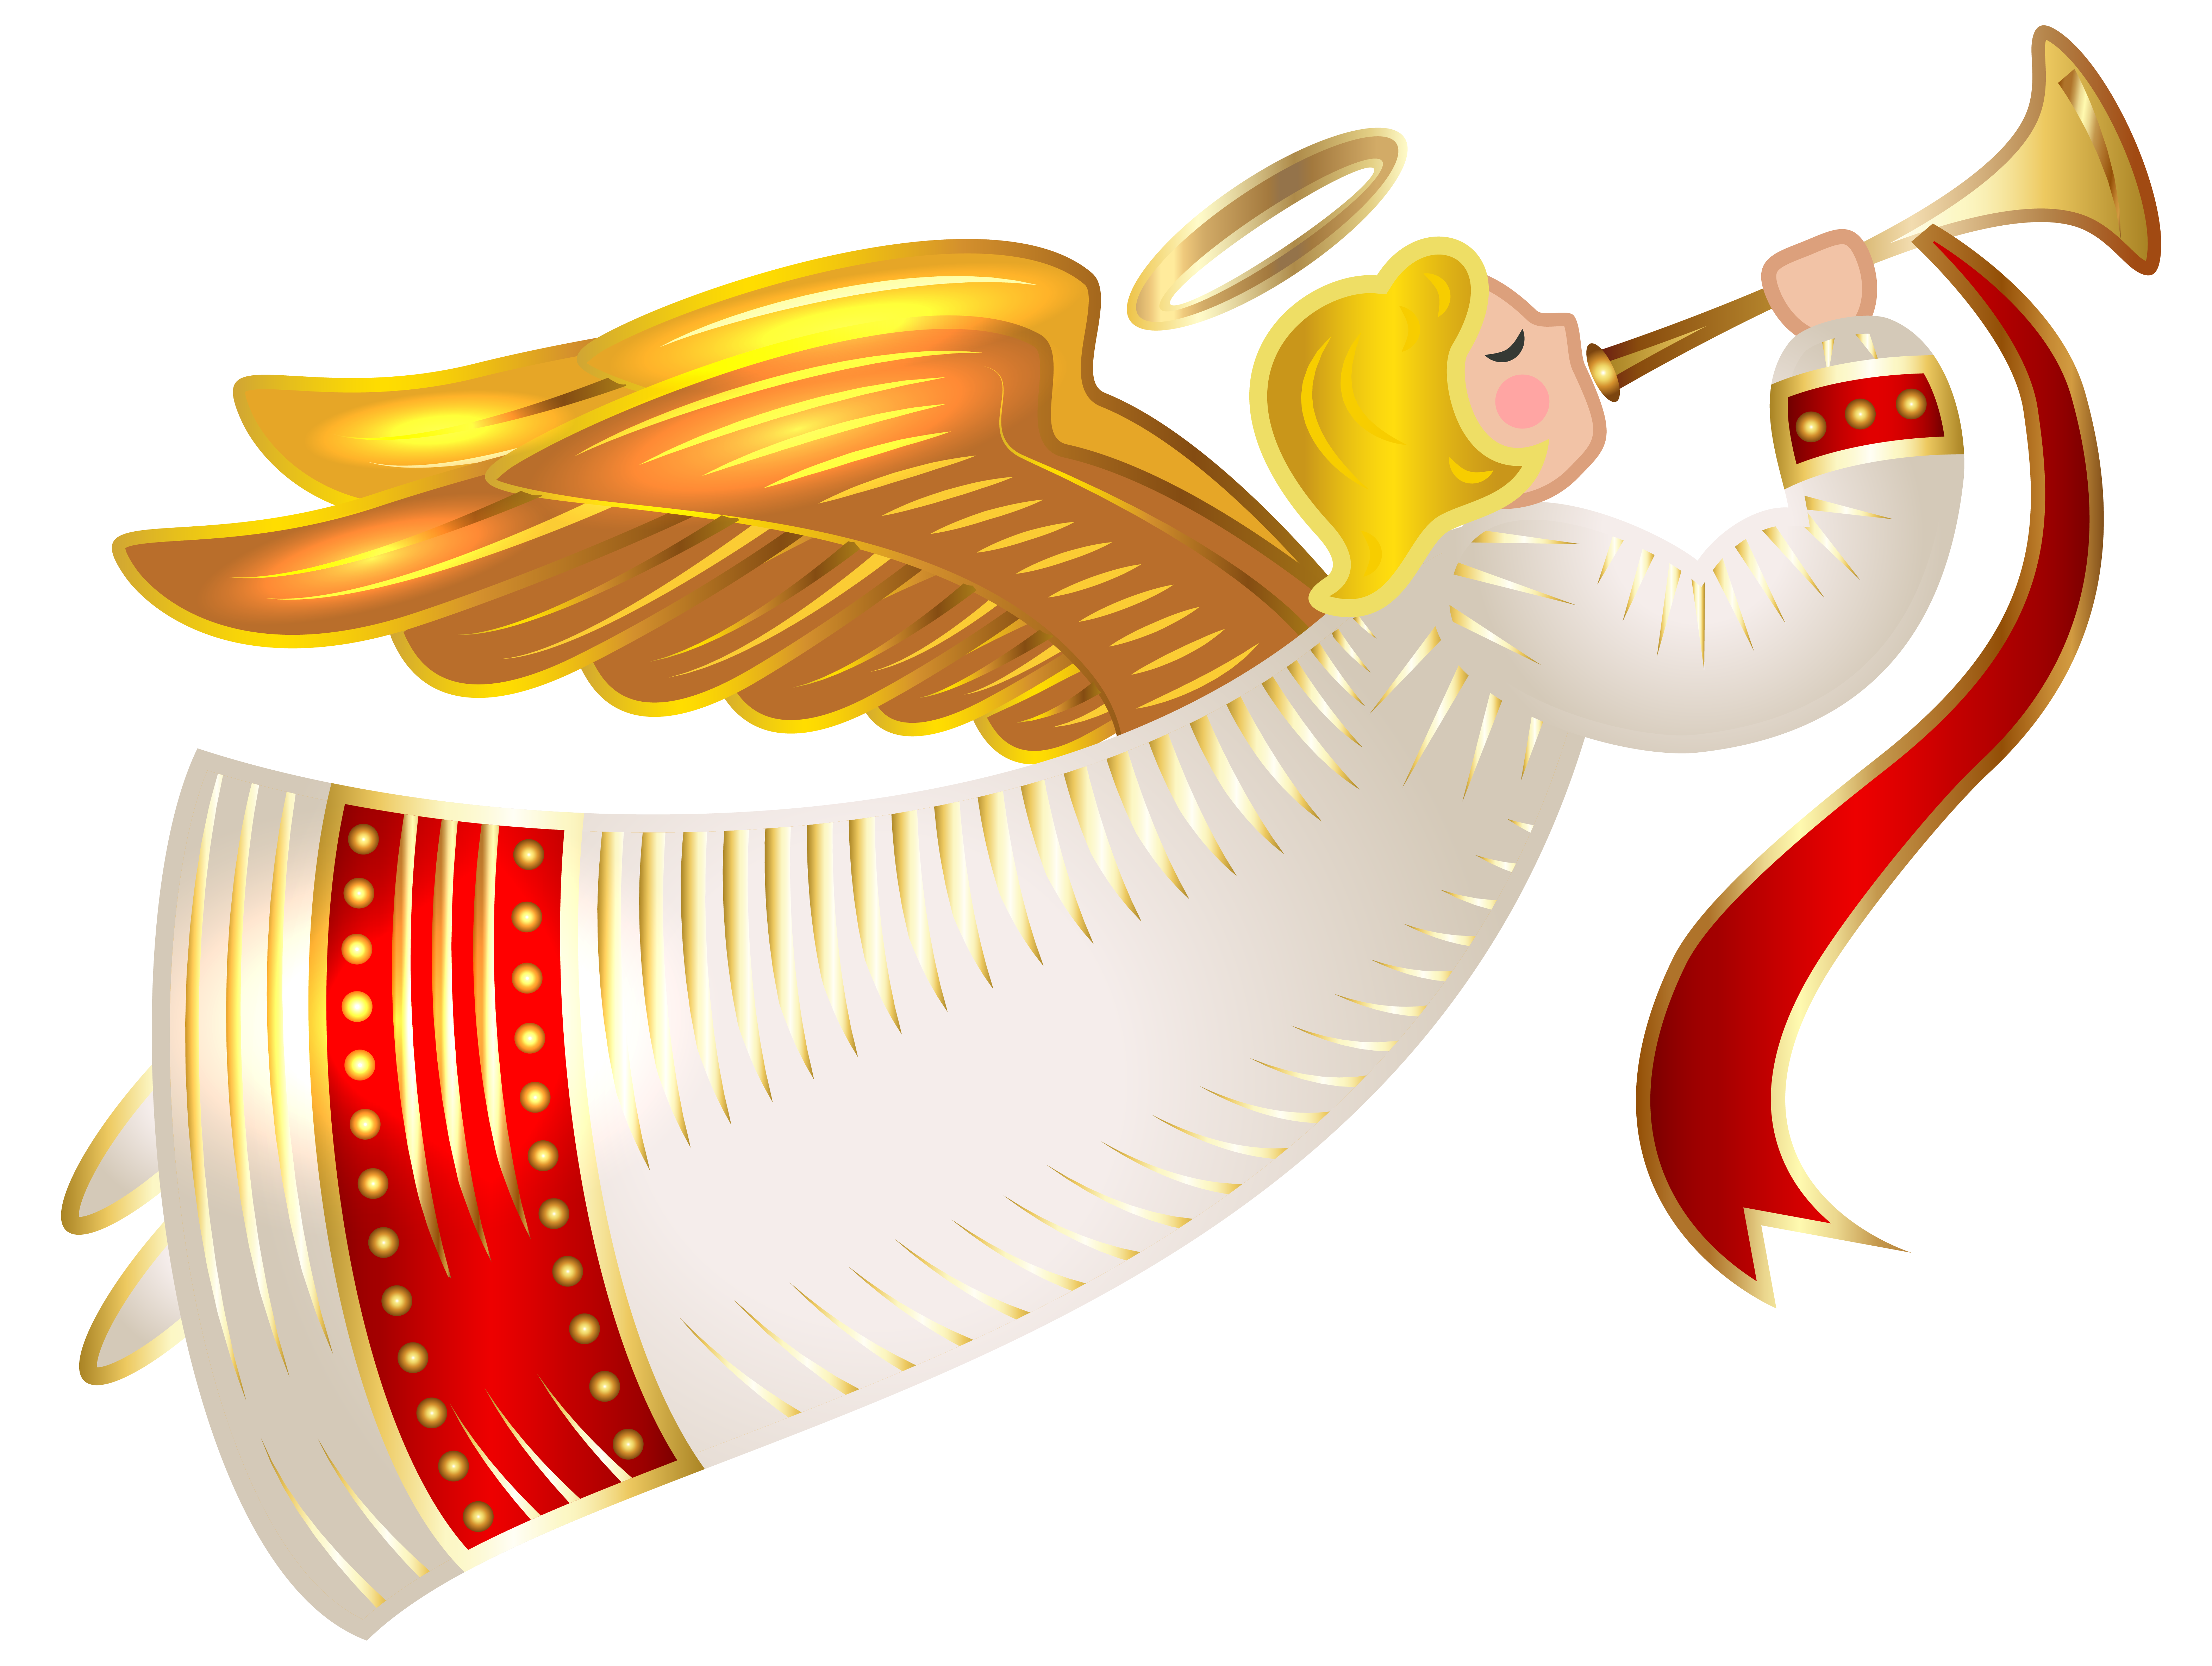 transparent background angel clipart best Free Clip Art Downloads Microsoft clipart angel wings vector free download